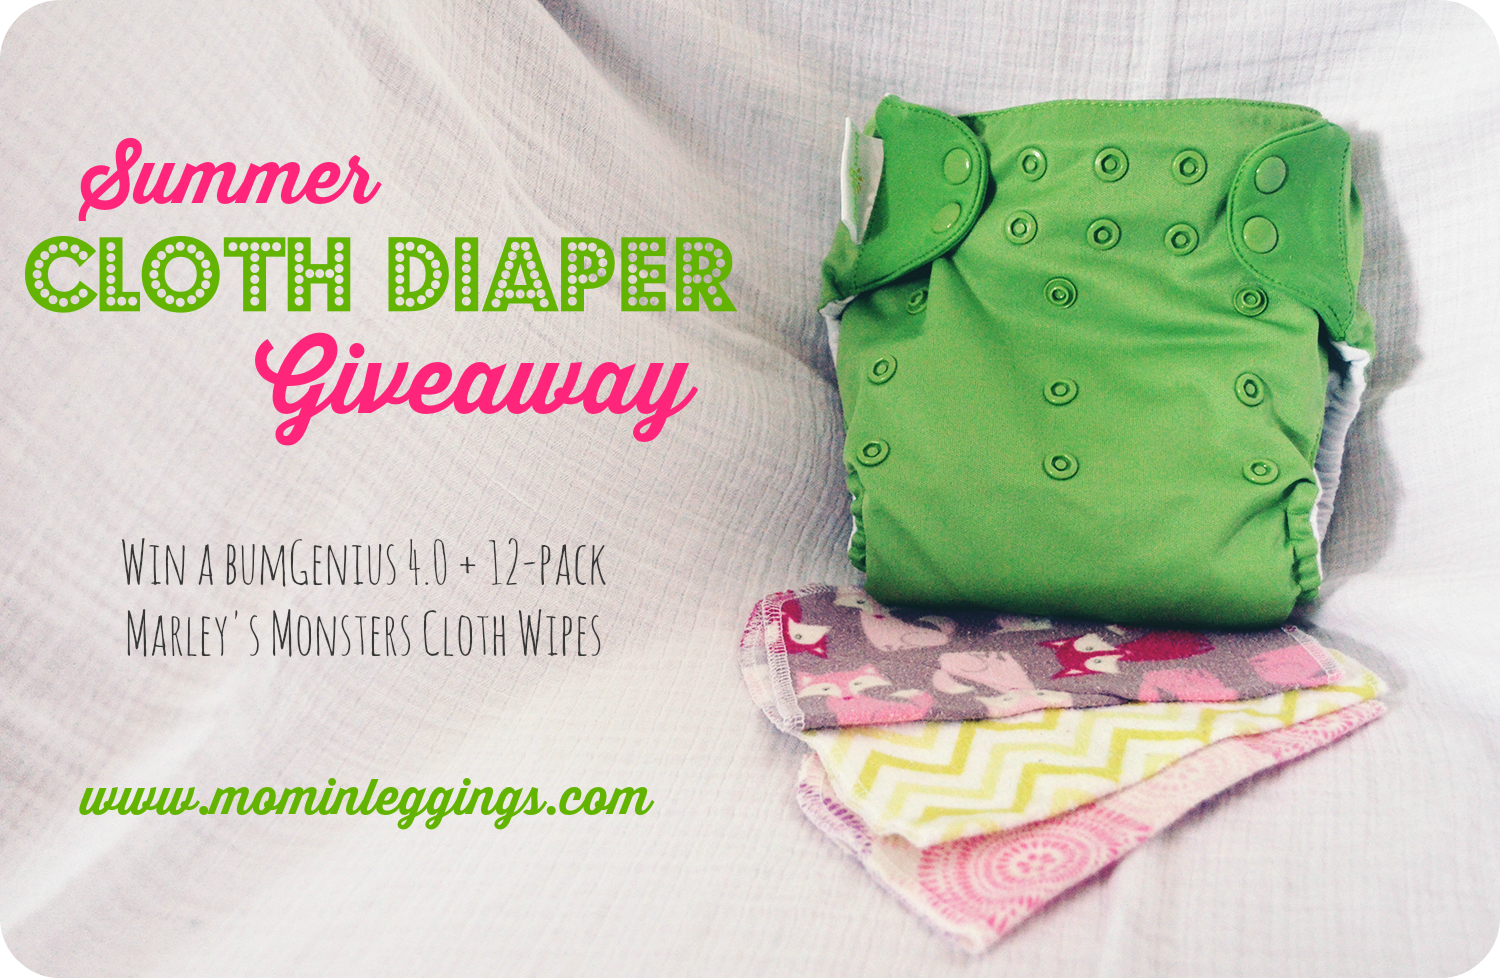 Summer Cloth Diaper Giveaway